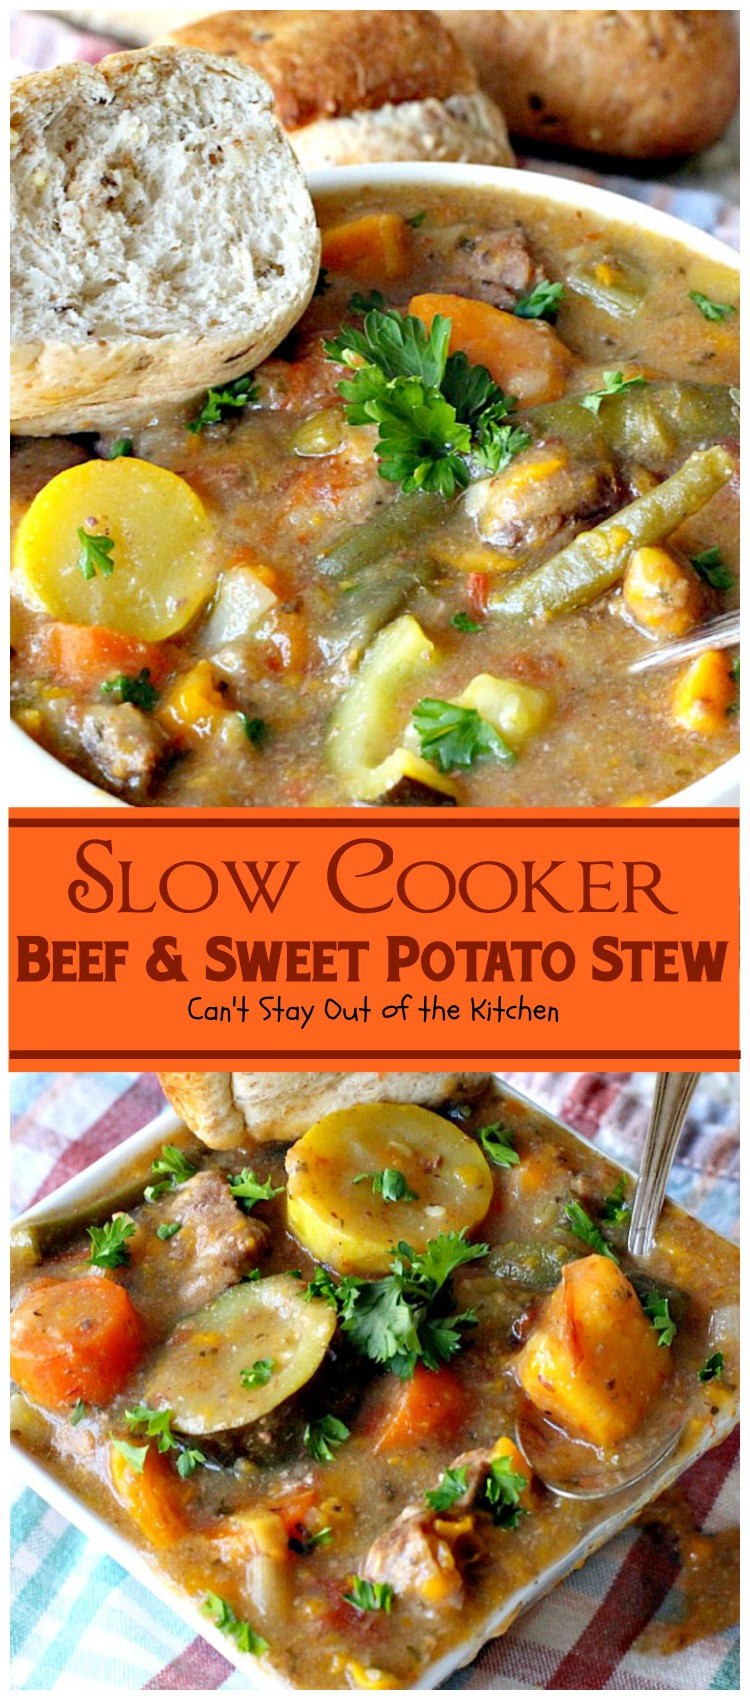 Beef And Sweet Potato Stew  Slow Cooker Beef and Sweet Potato Stew Can t Stay Out of